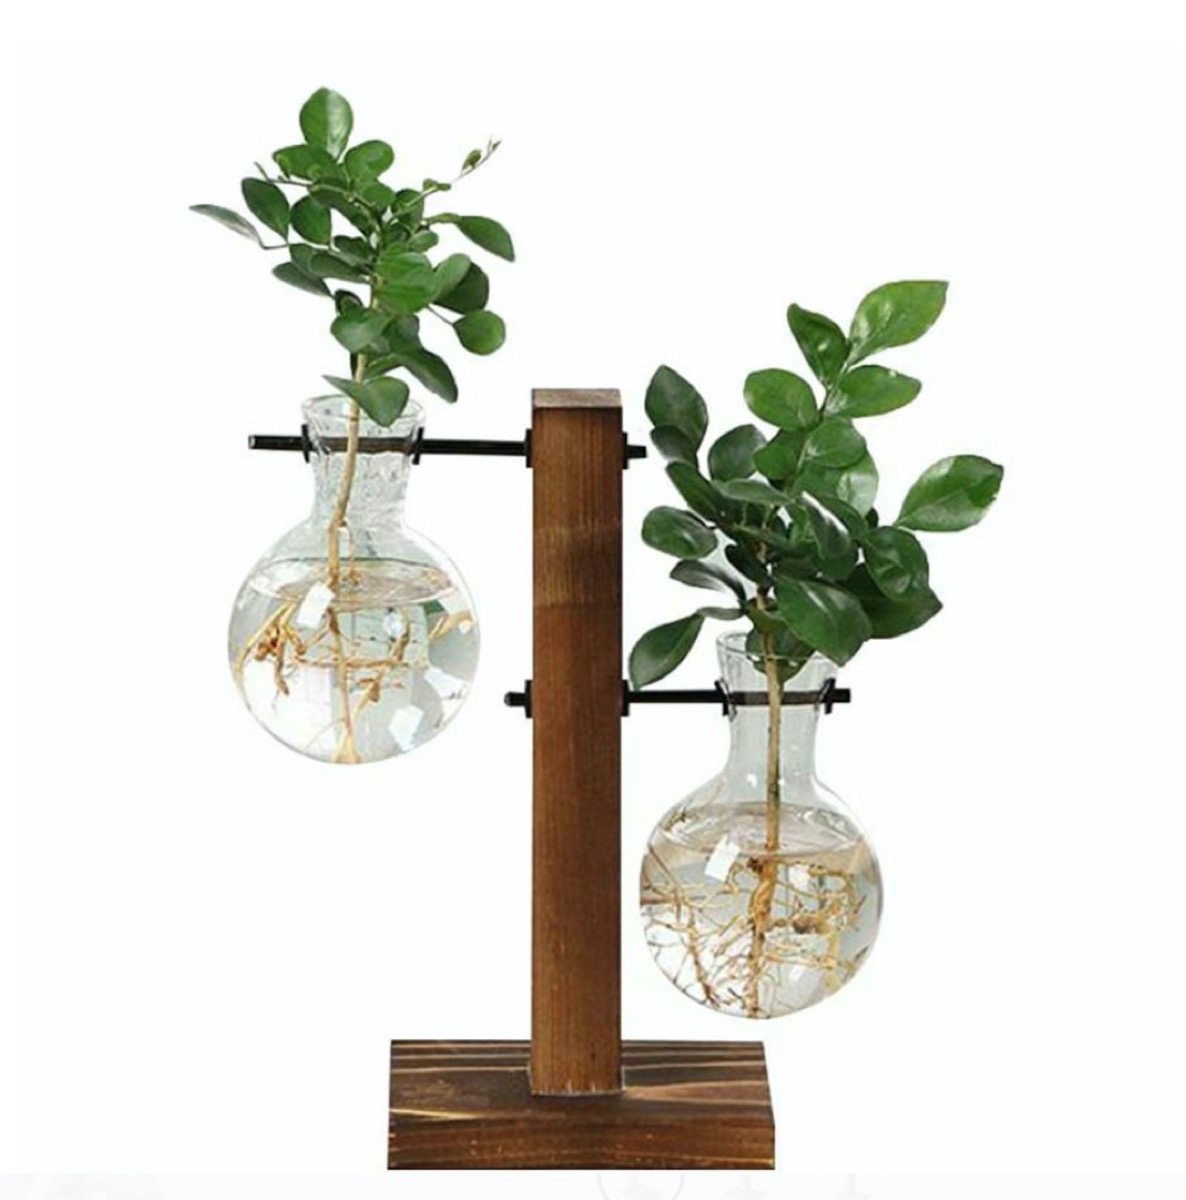 two glass vial vases in wooden stand